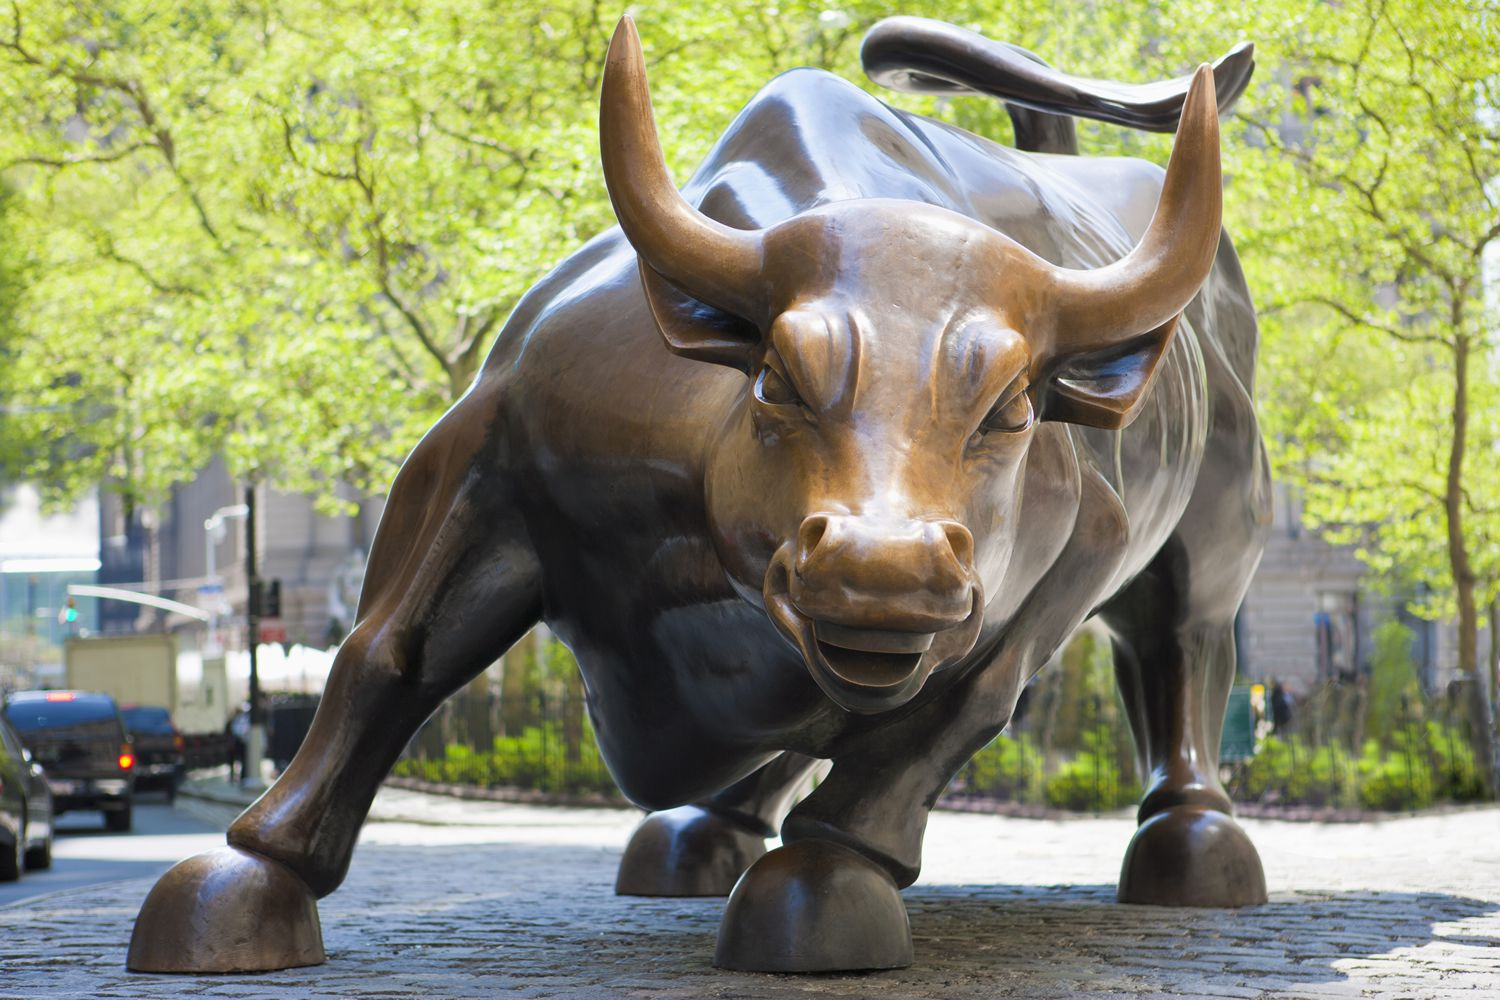 Why Bull Market Could Rise Over 25% In 2019 Despite Trade War